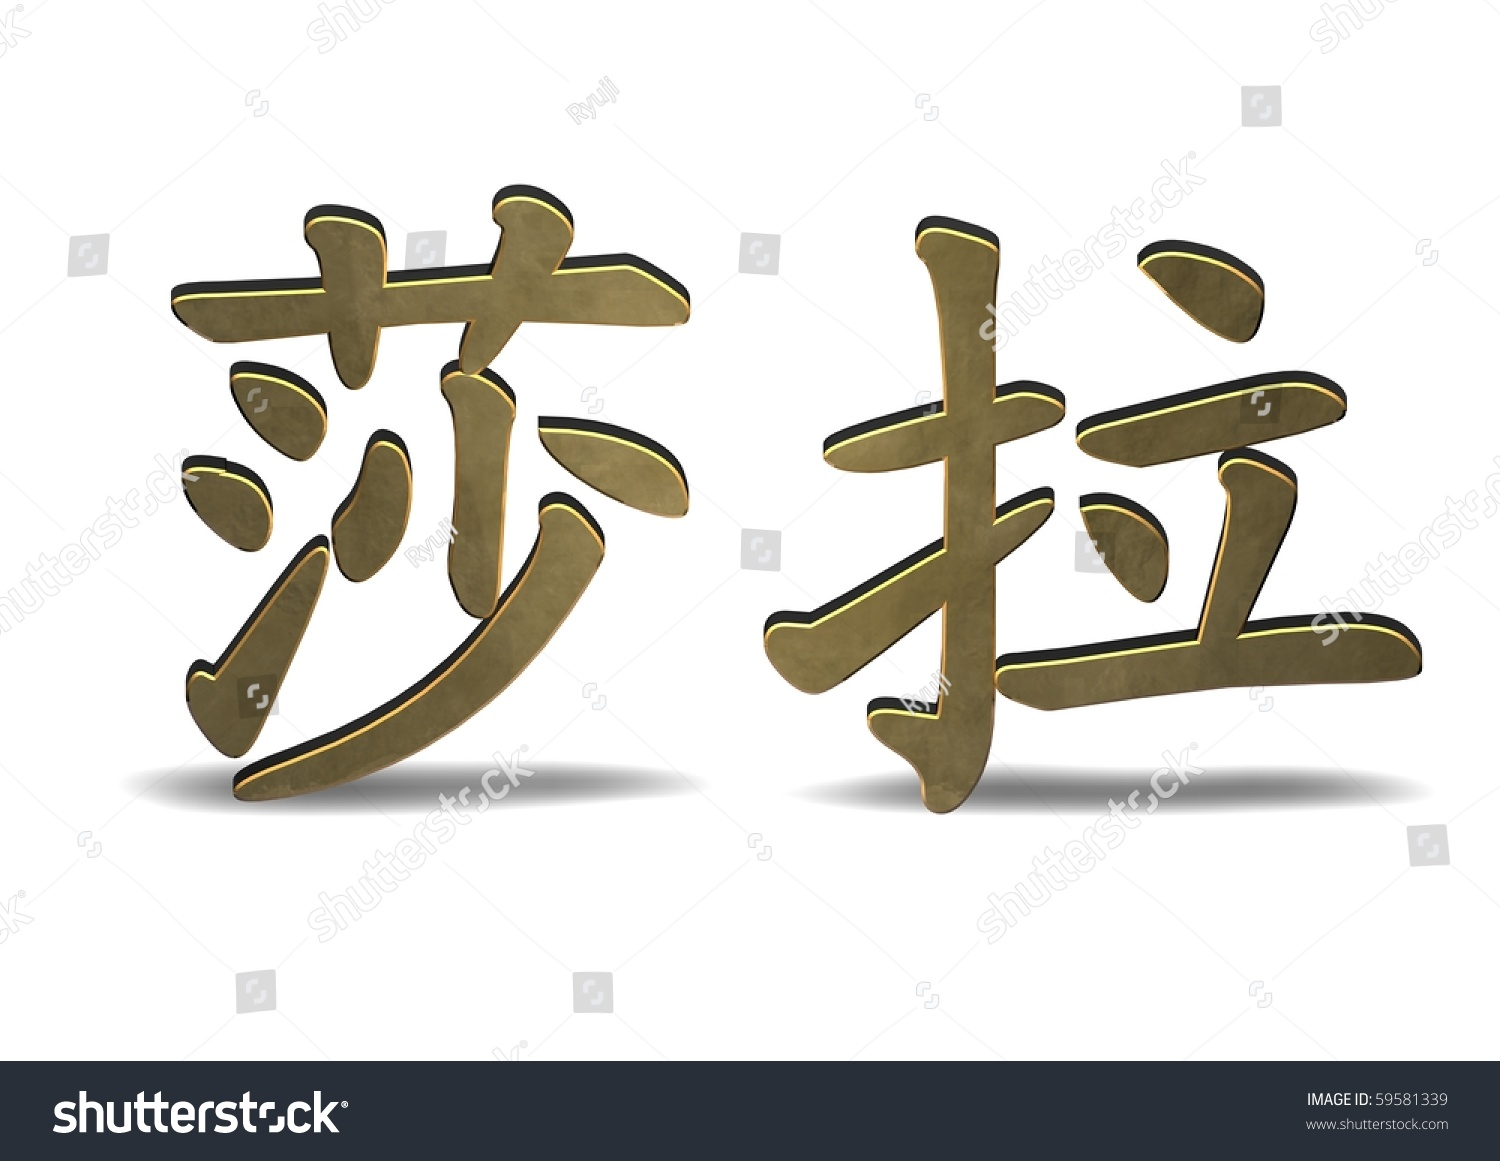 Sara chinese character symbol isolated on stock illustration sara chinese character symbol isolated on white biocorpaavc